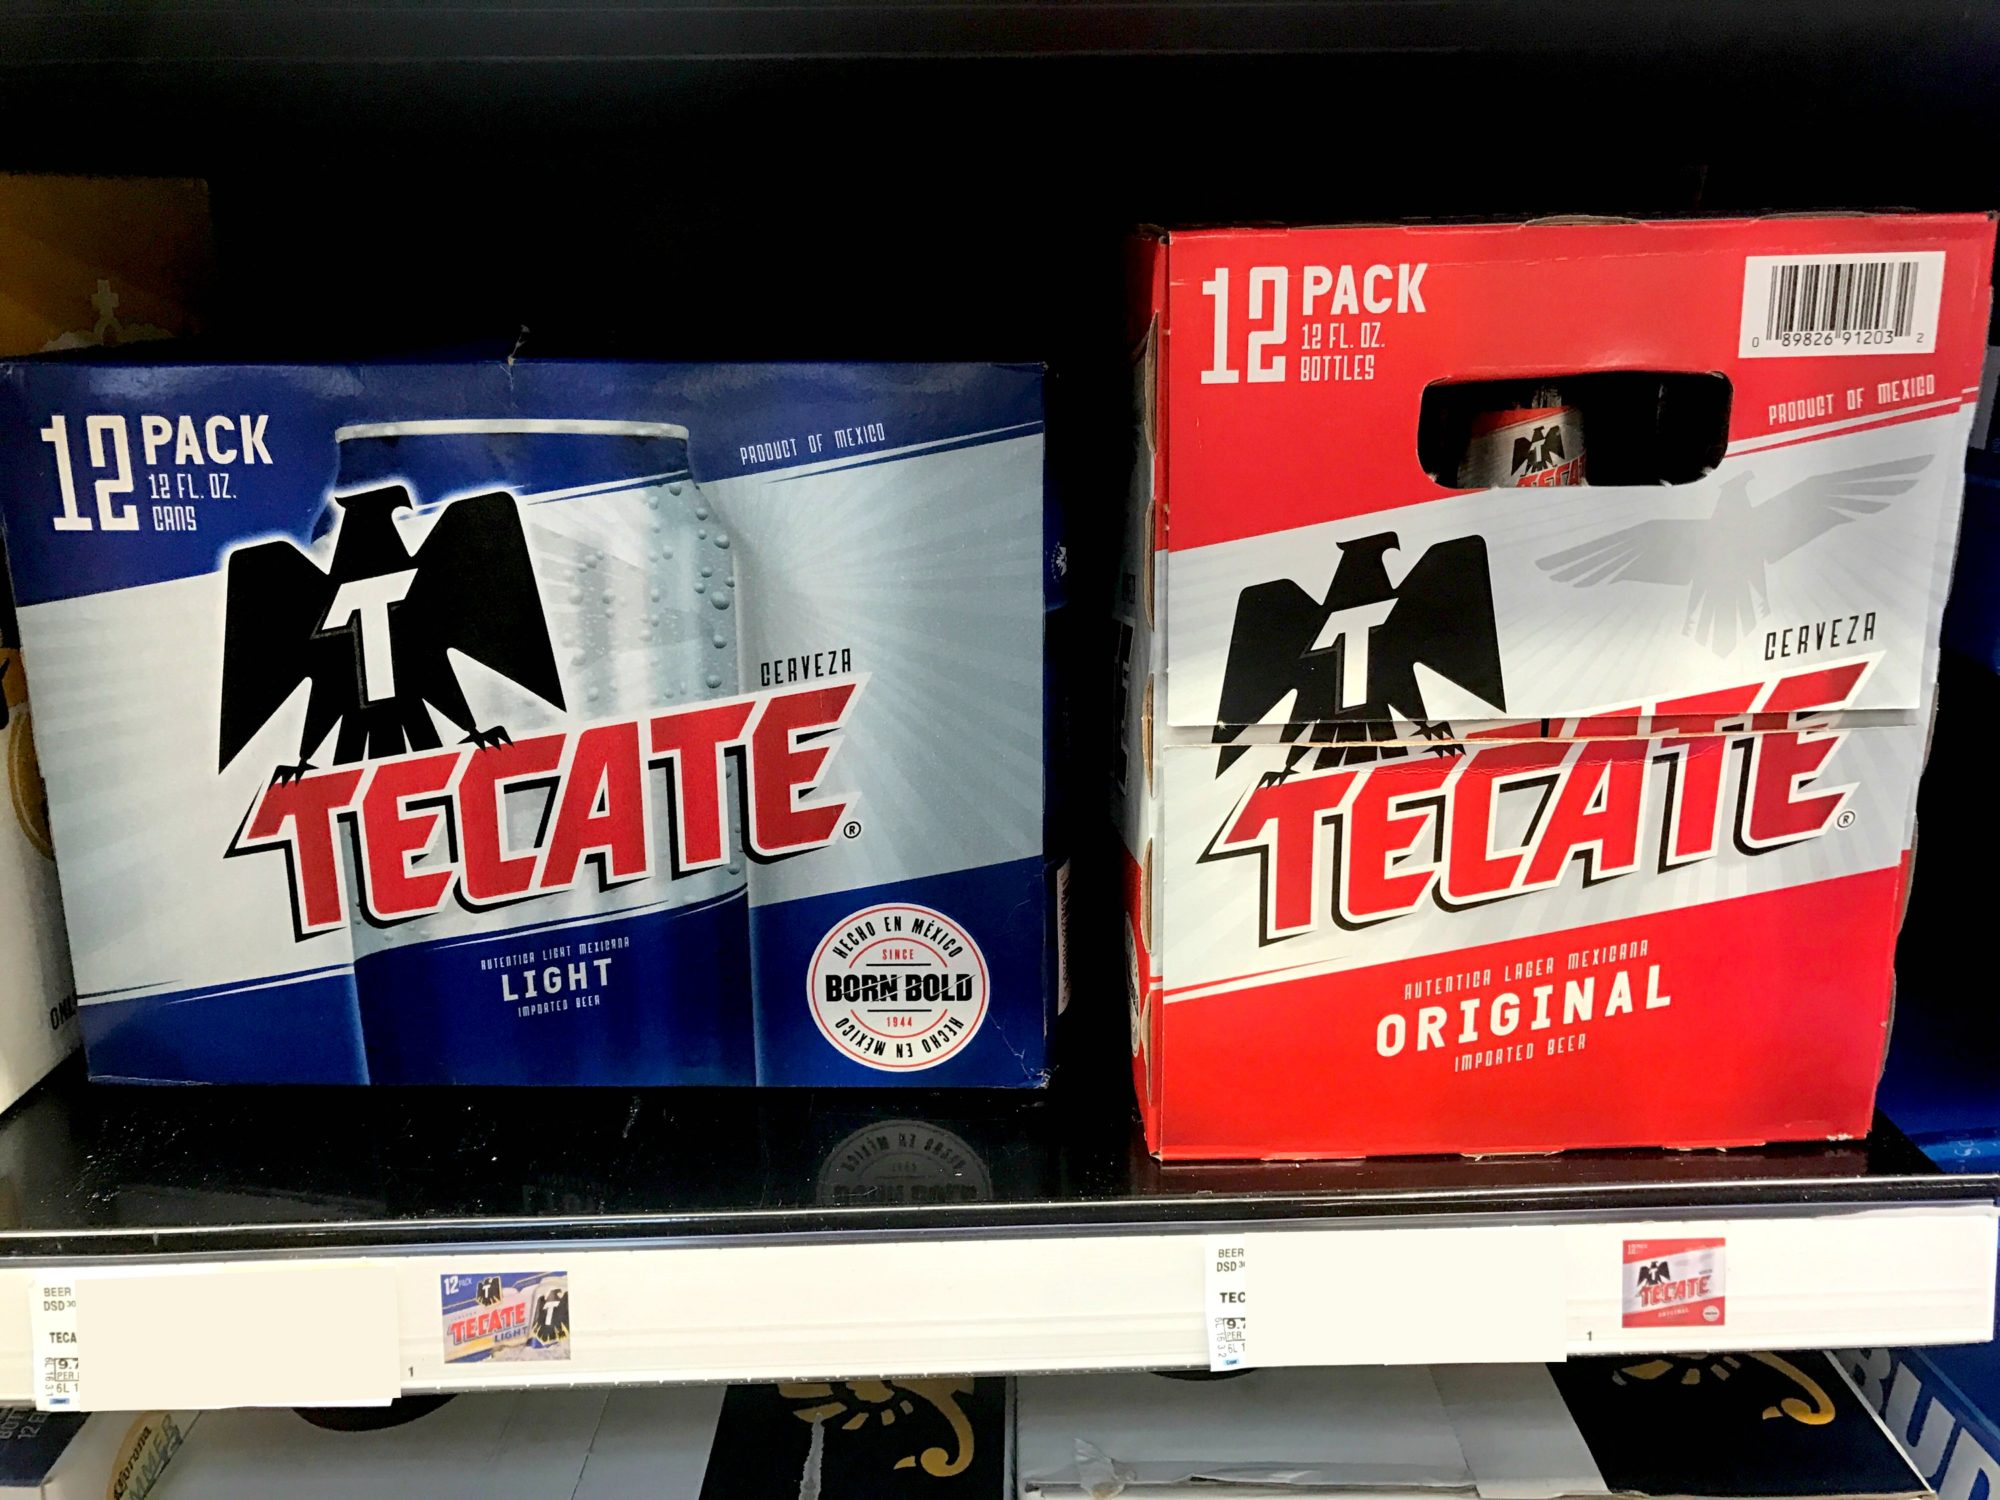 Tecate in store